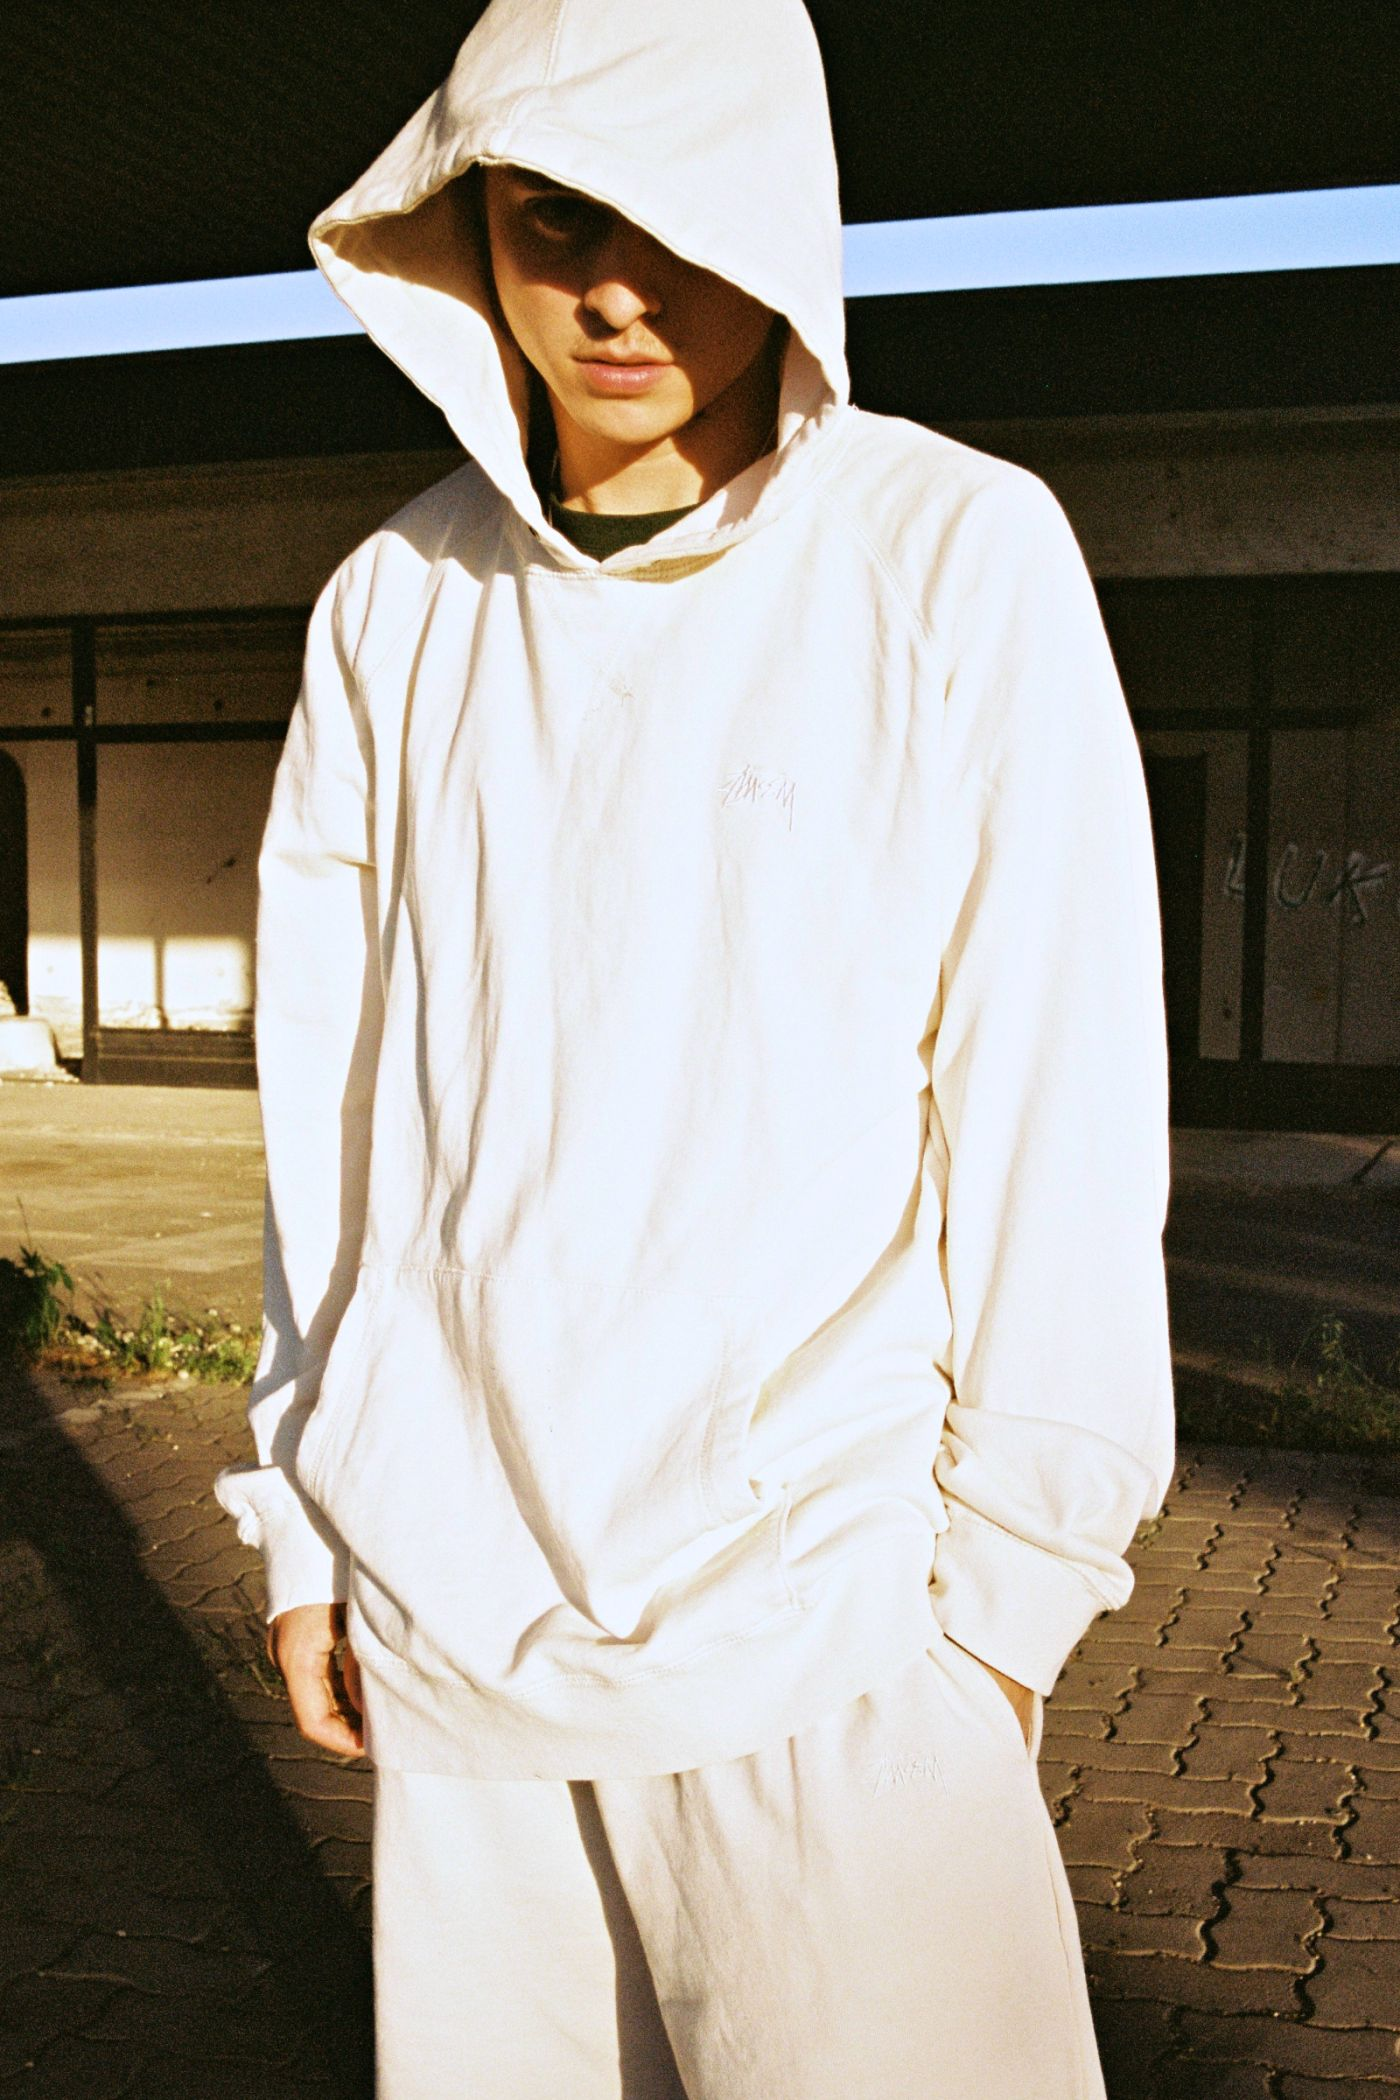 Dalyb x Stussy Worldwide Lookbook